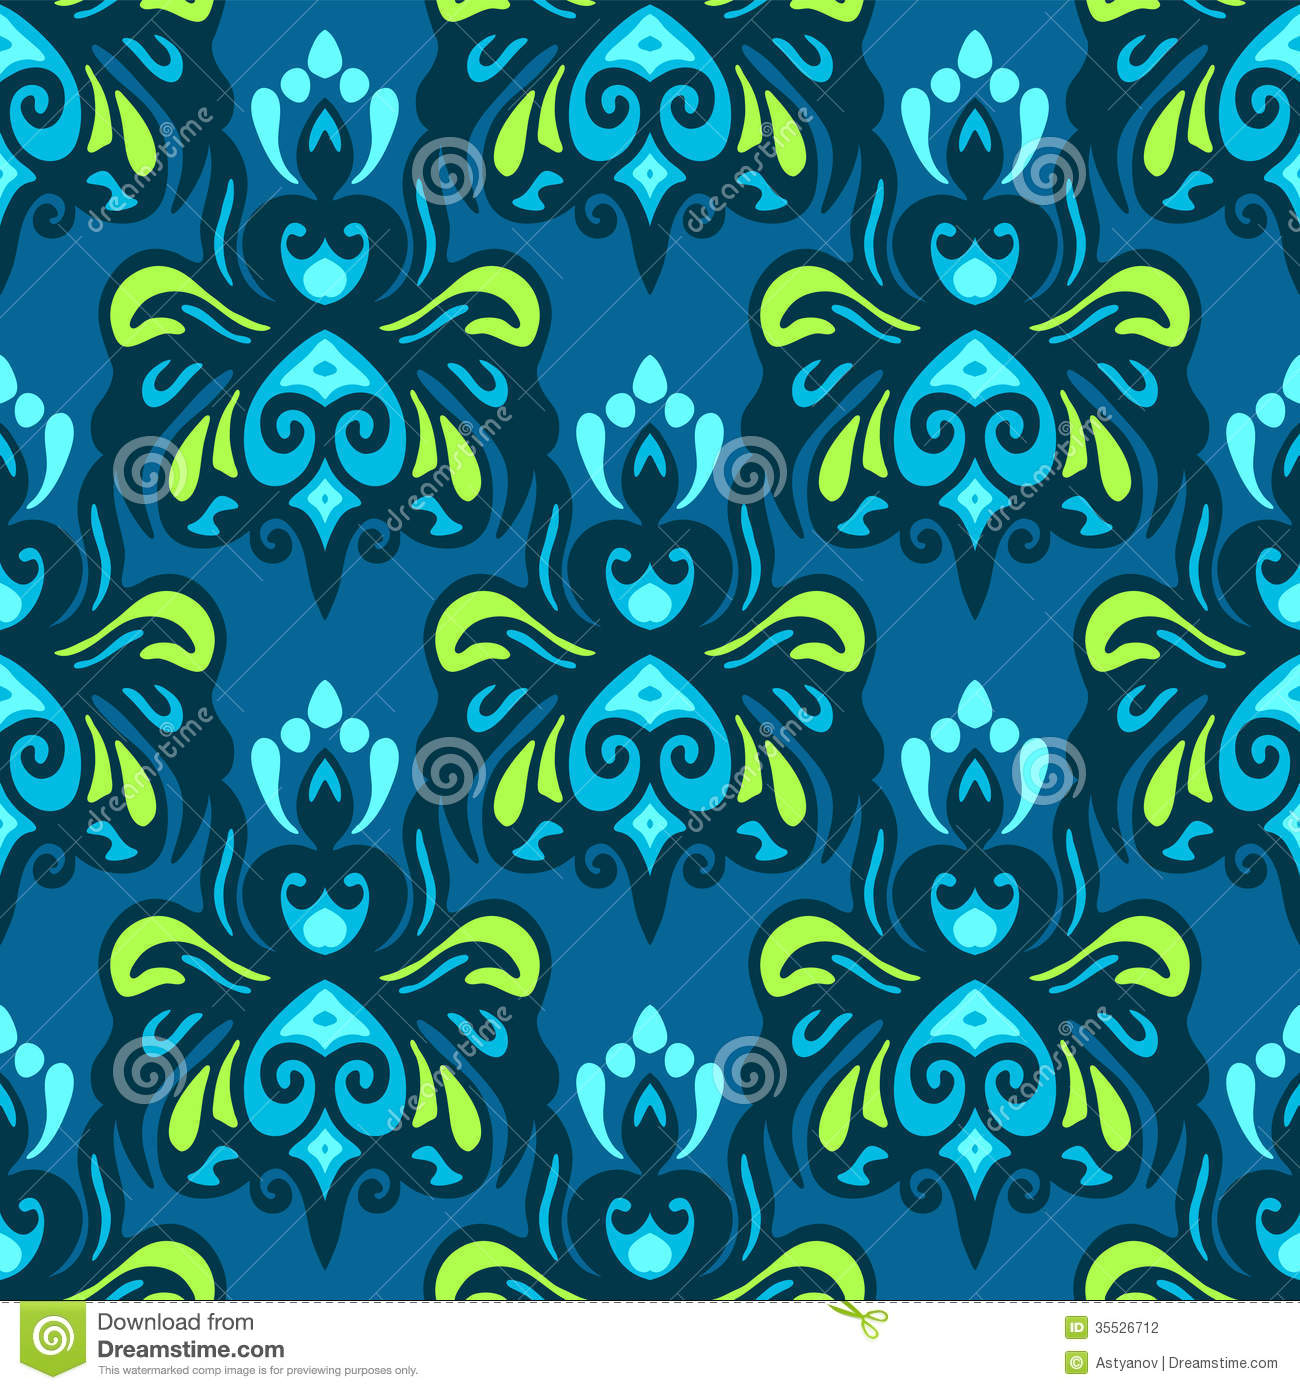 Blue Tribal Wallpapers: Ethnic Seamless Damask Gift Wrap Stock Photography